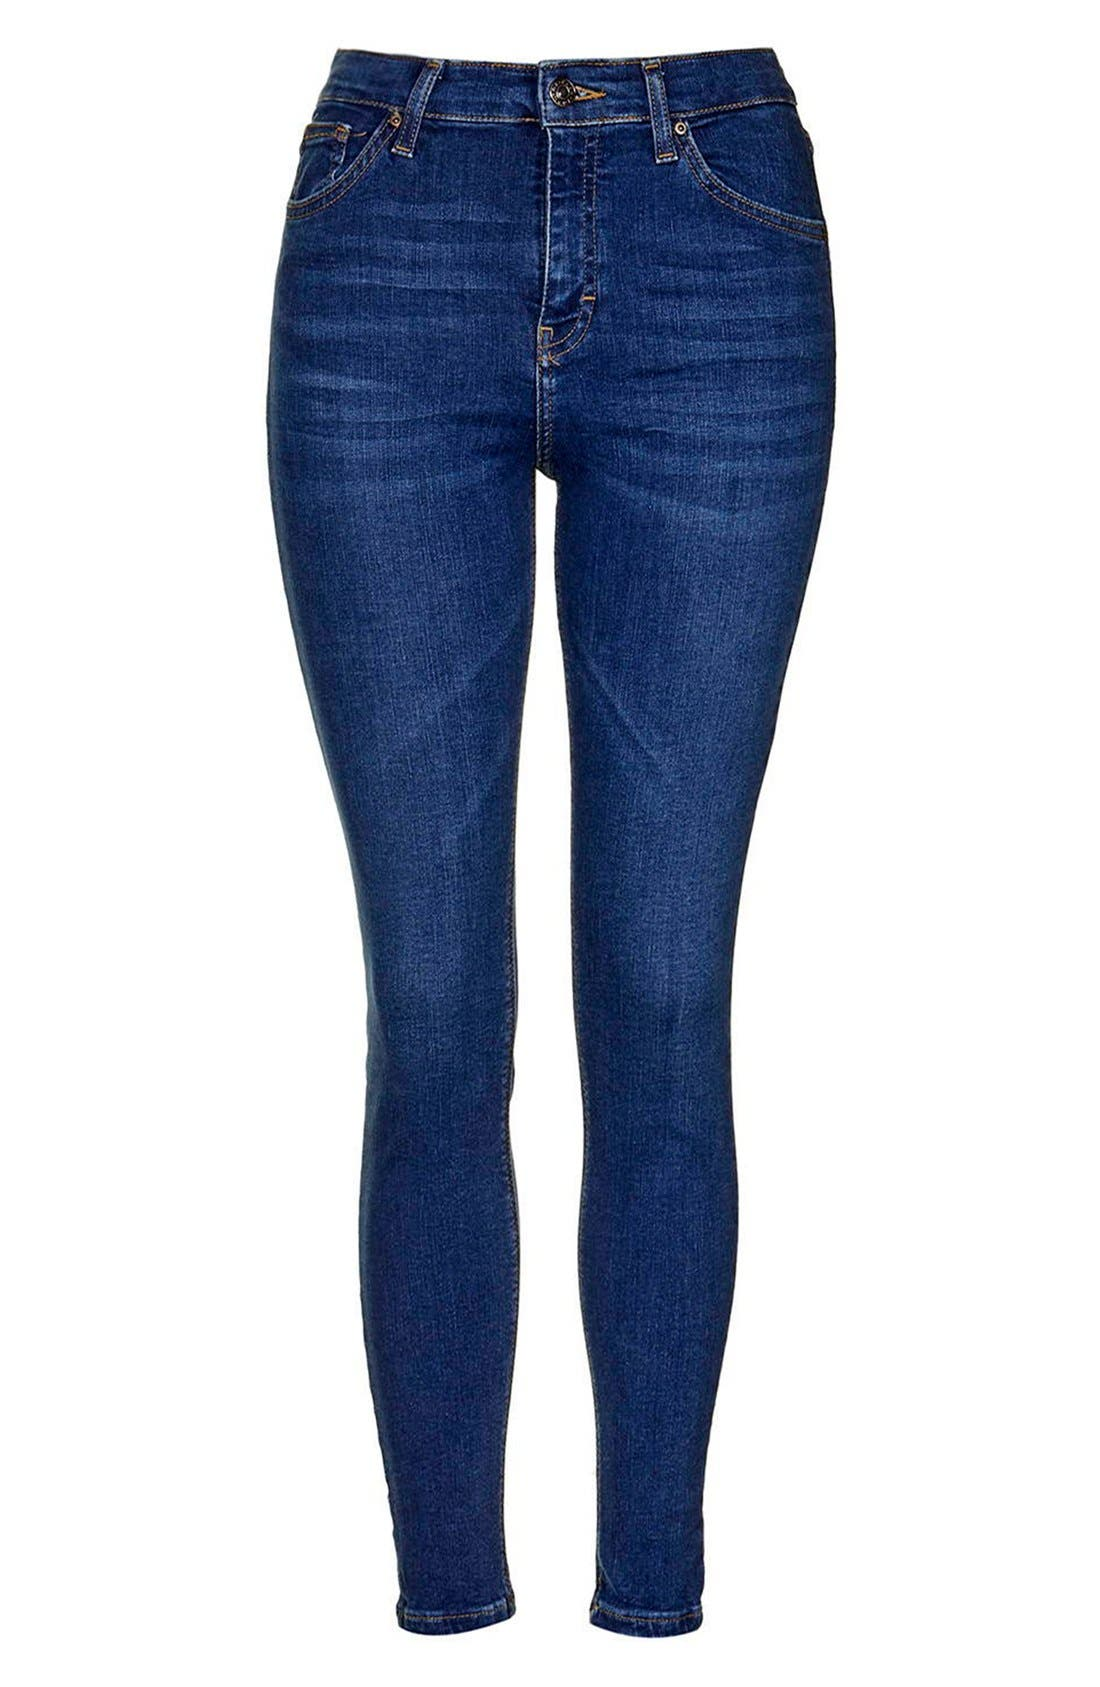 Alternate Image 4  - Topshop 'Jamie' High Rise Ankle Skinny Jeans (Petite)